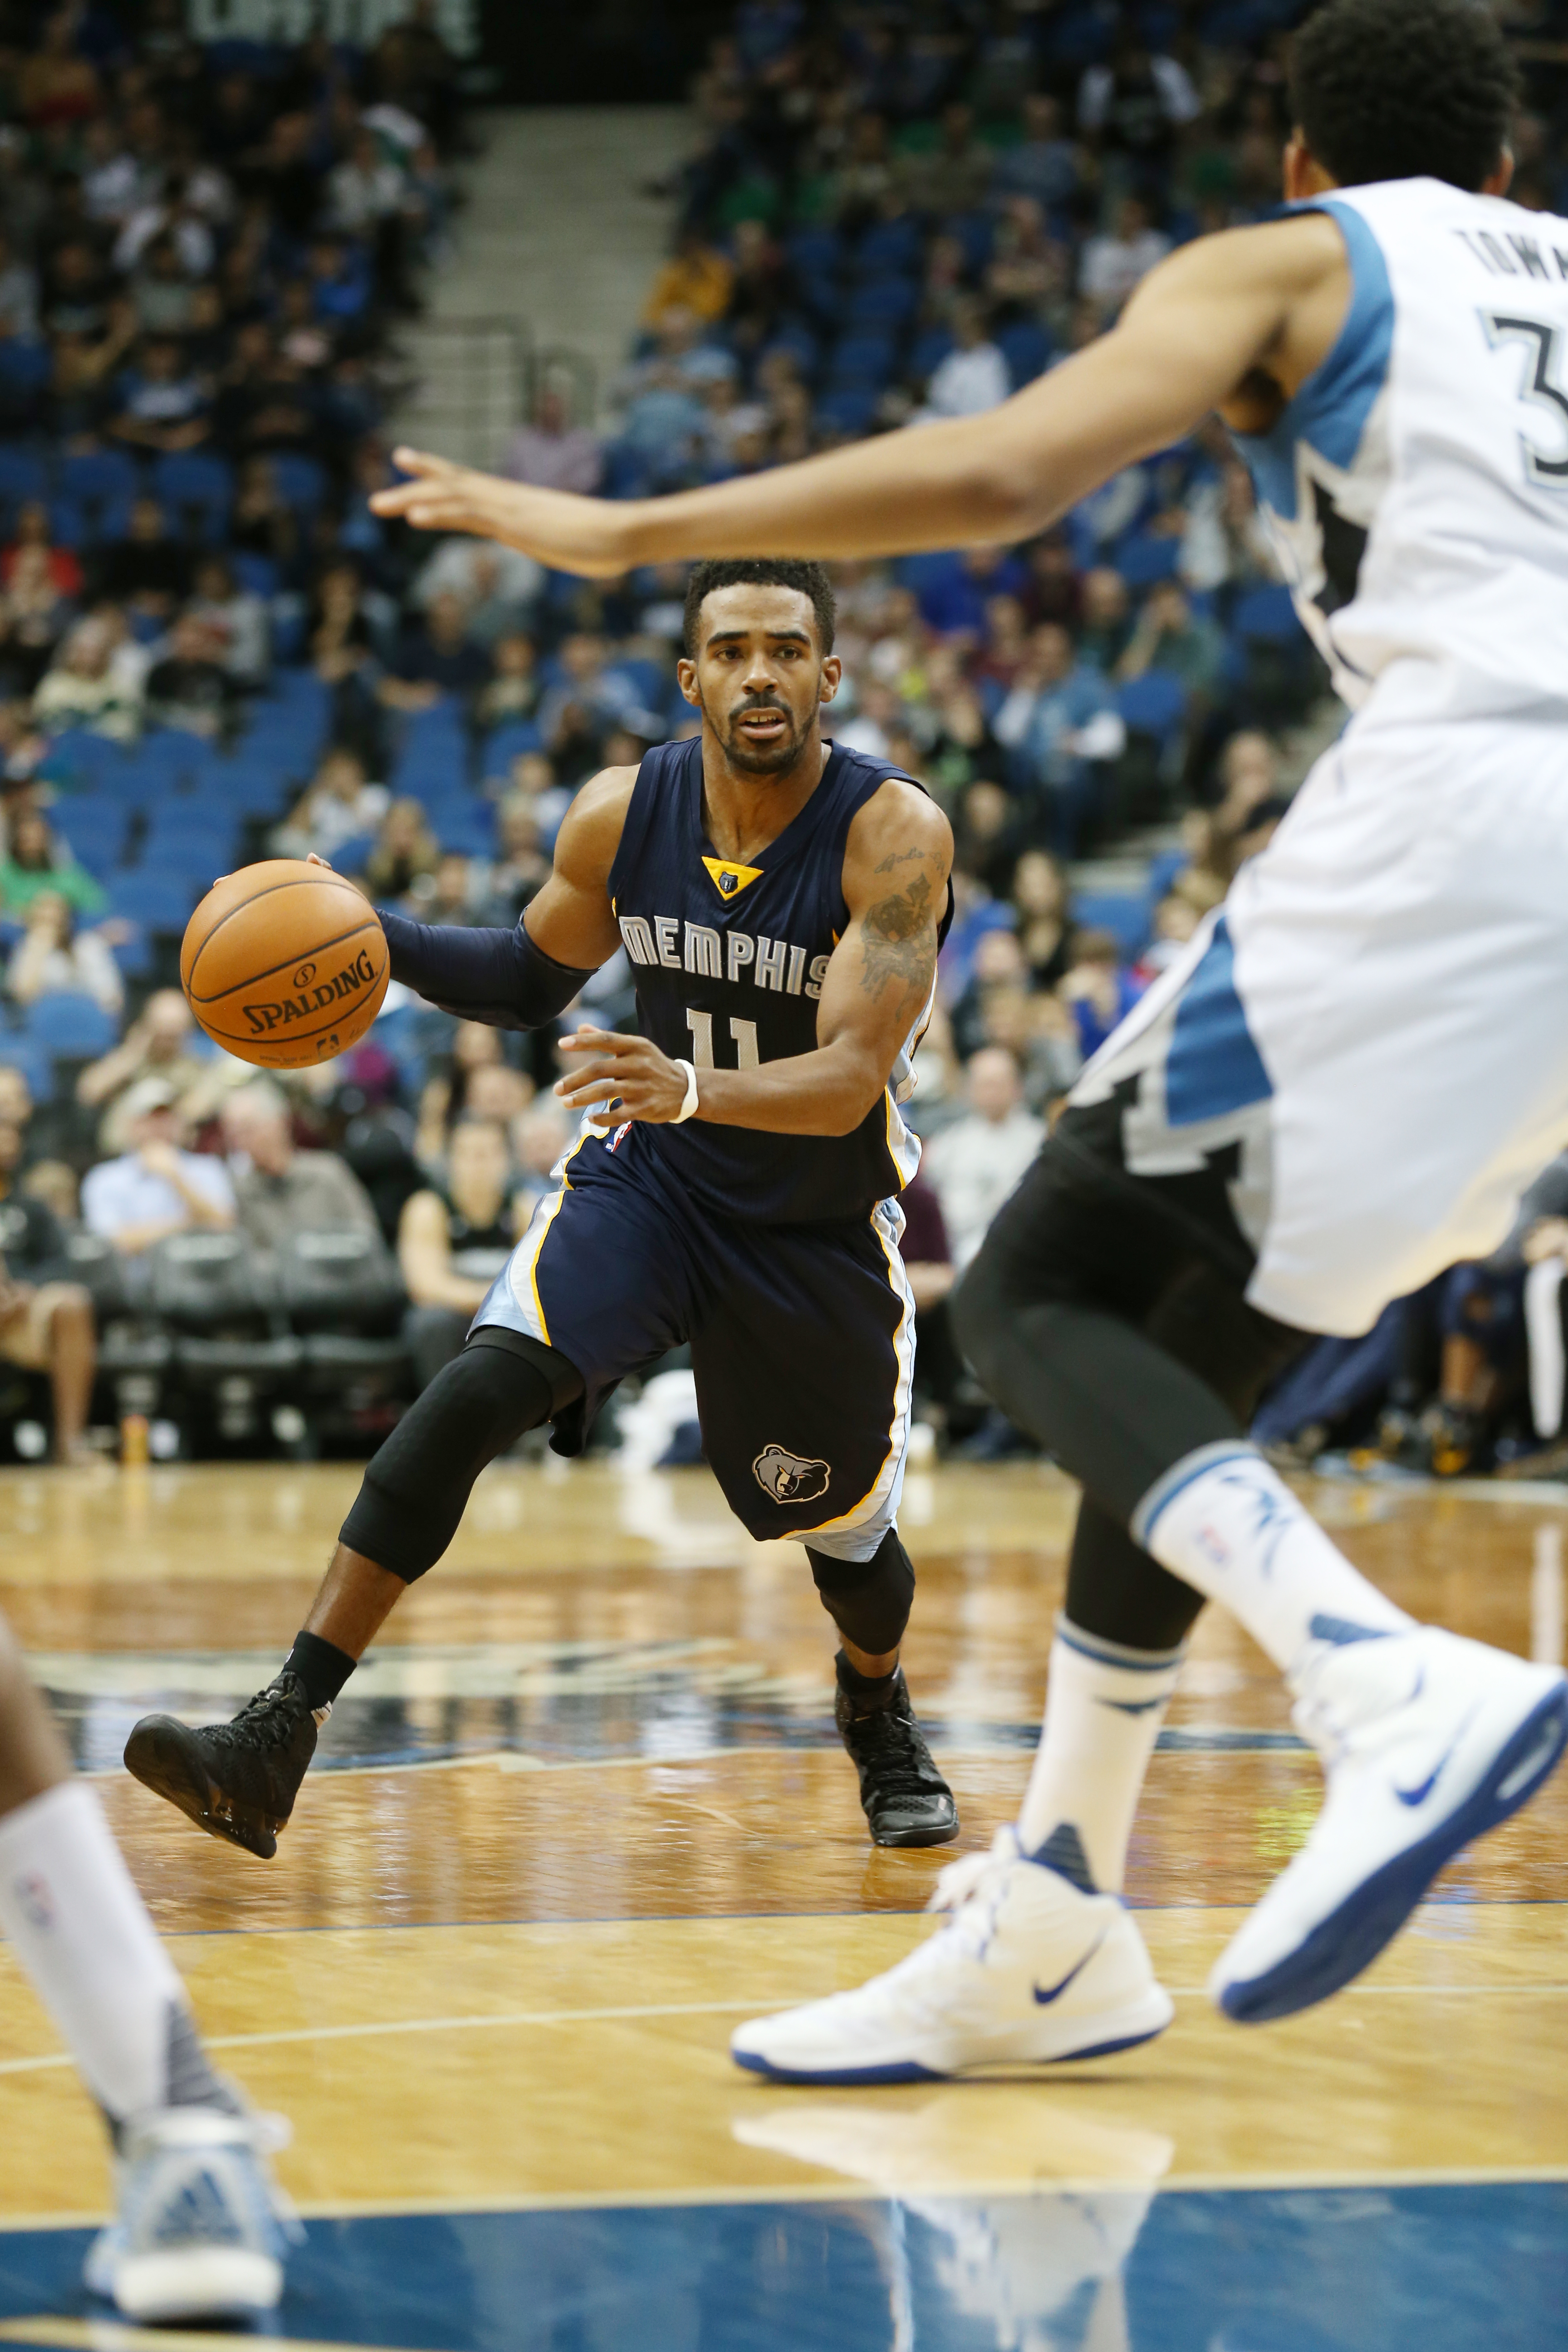 MINNEAPOLIS, MN - NOVEMBER 15: Mike Conley #11 of the Memphis Grizzlies looks to move the ball against the Minnesota Timberwolves during the game on November 15, 2015 at Target Center in Minneapolis, Minnesota. (Photo by Jordan Johnson/NBAE via Getty Imag